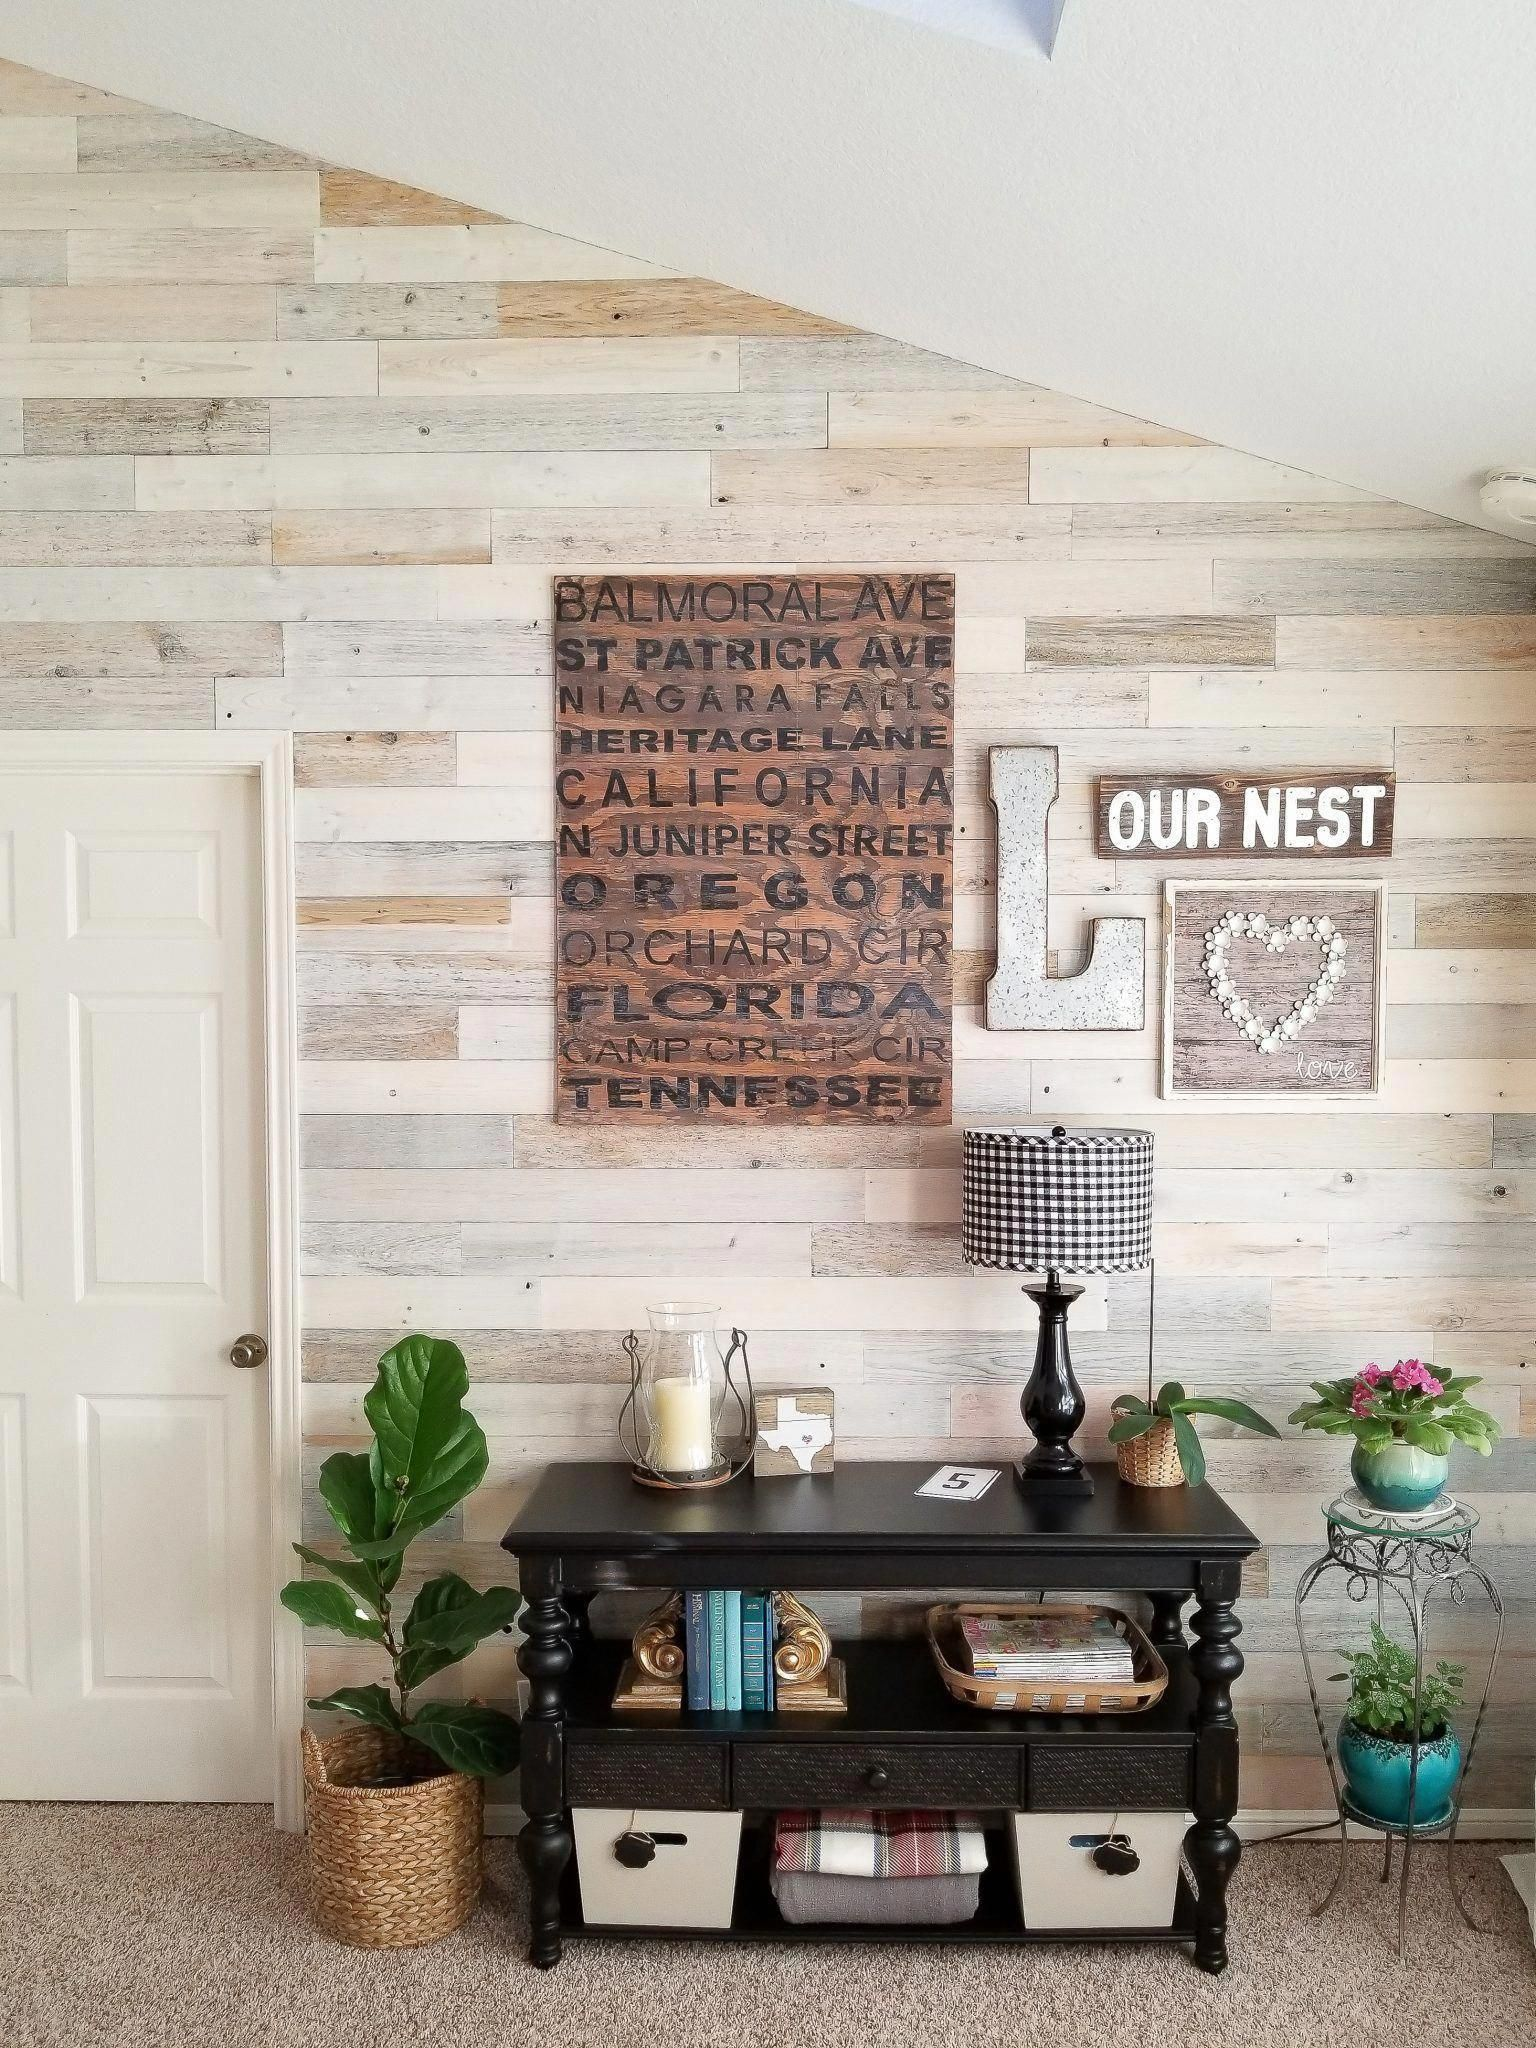 How to make home decoration items also commercial interiors wood rh pinterest